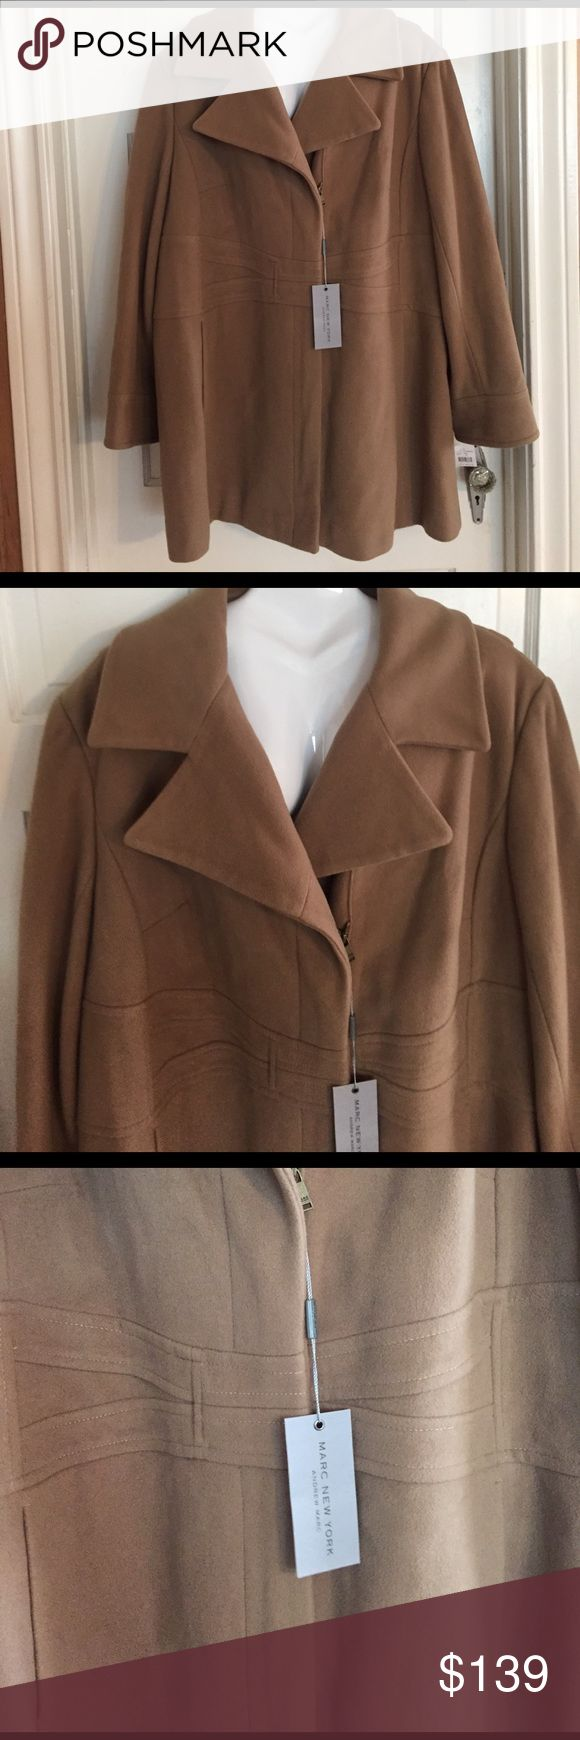 ☘️NWT Andrew Marc Wool/Cashmere Camel Coat. 3X ☘️NWT Andrew Marc Wool/Cashmere Camel Coat. 3X.  Brand spanking new. Front zipper. Great detail on the front. Front inset pockets. Great pea coat length. $315 retail.   True to size. Andrew Marc Jackets & Coats Pea Coats